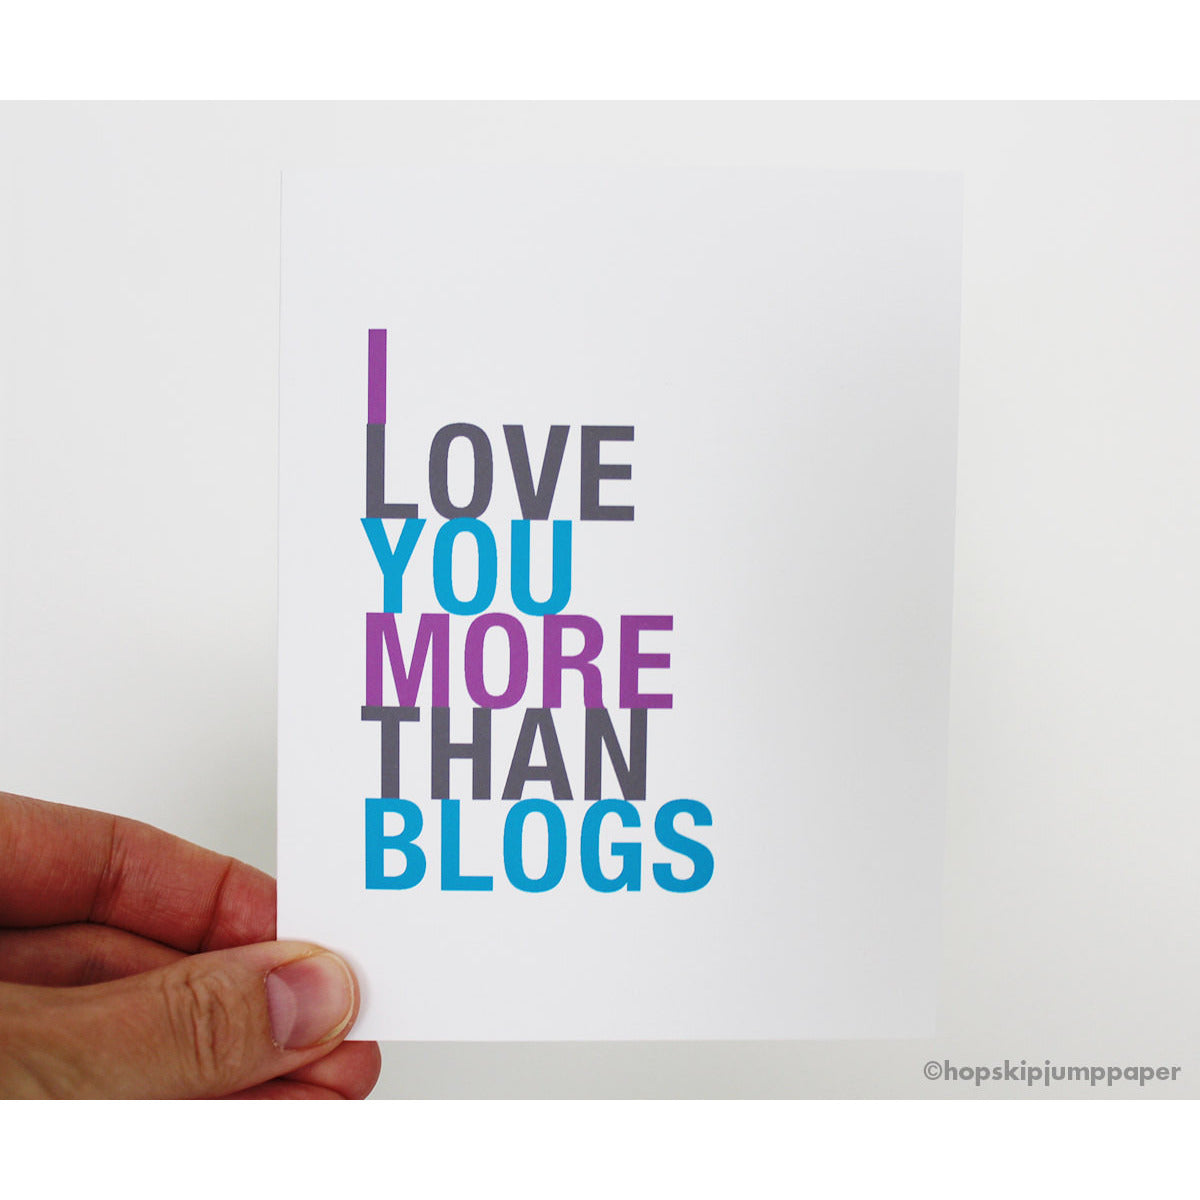 I Love You More Than Blogs greeting card  - Shop Online